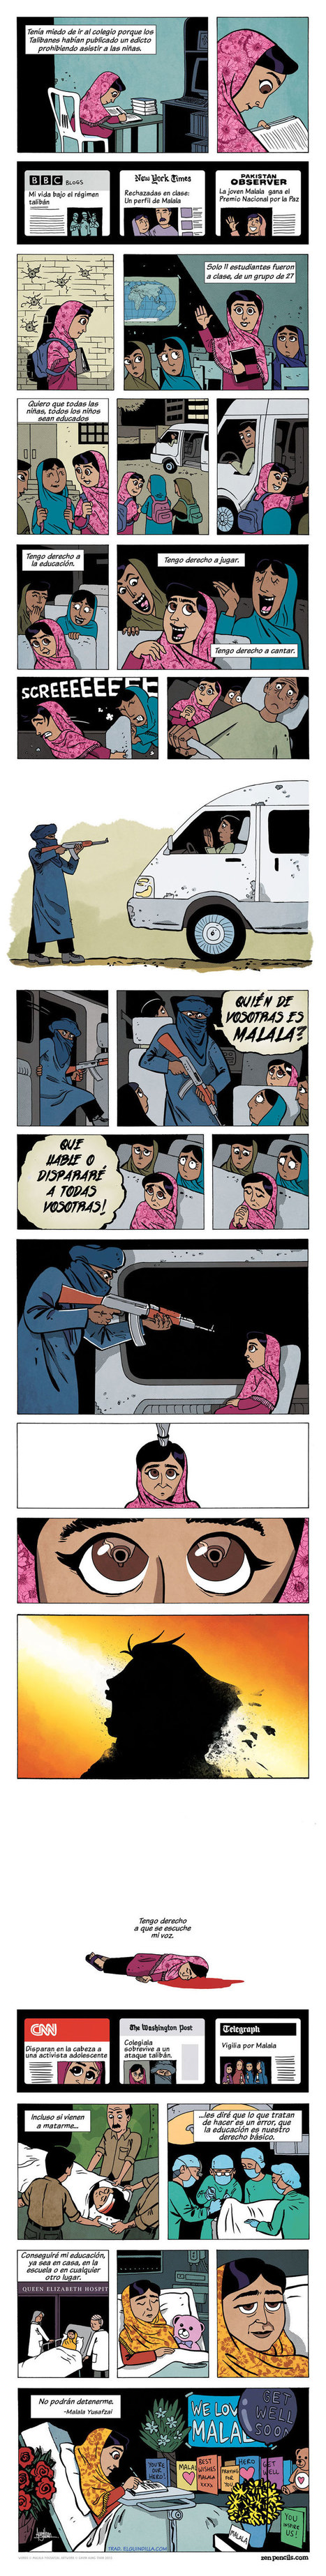 Cómic sobre Malala Yousafzai en castellano. | Bibliotecas Escolares do S. XXI | Scoop.it